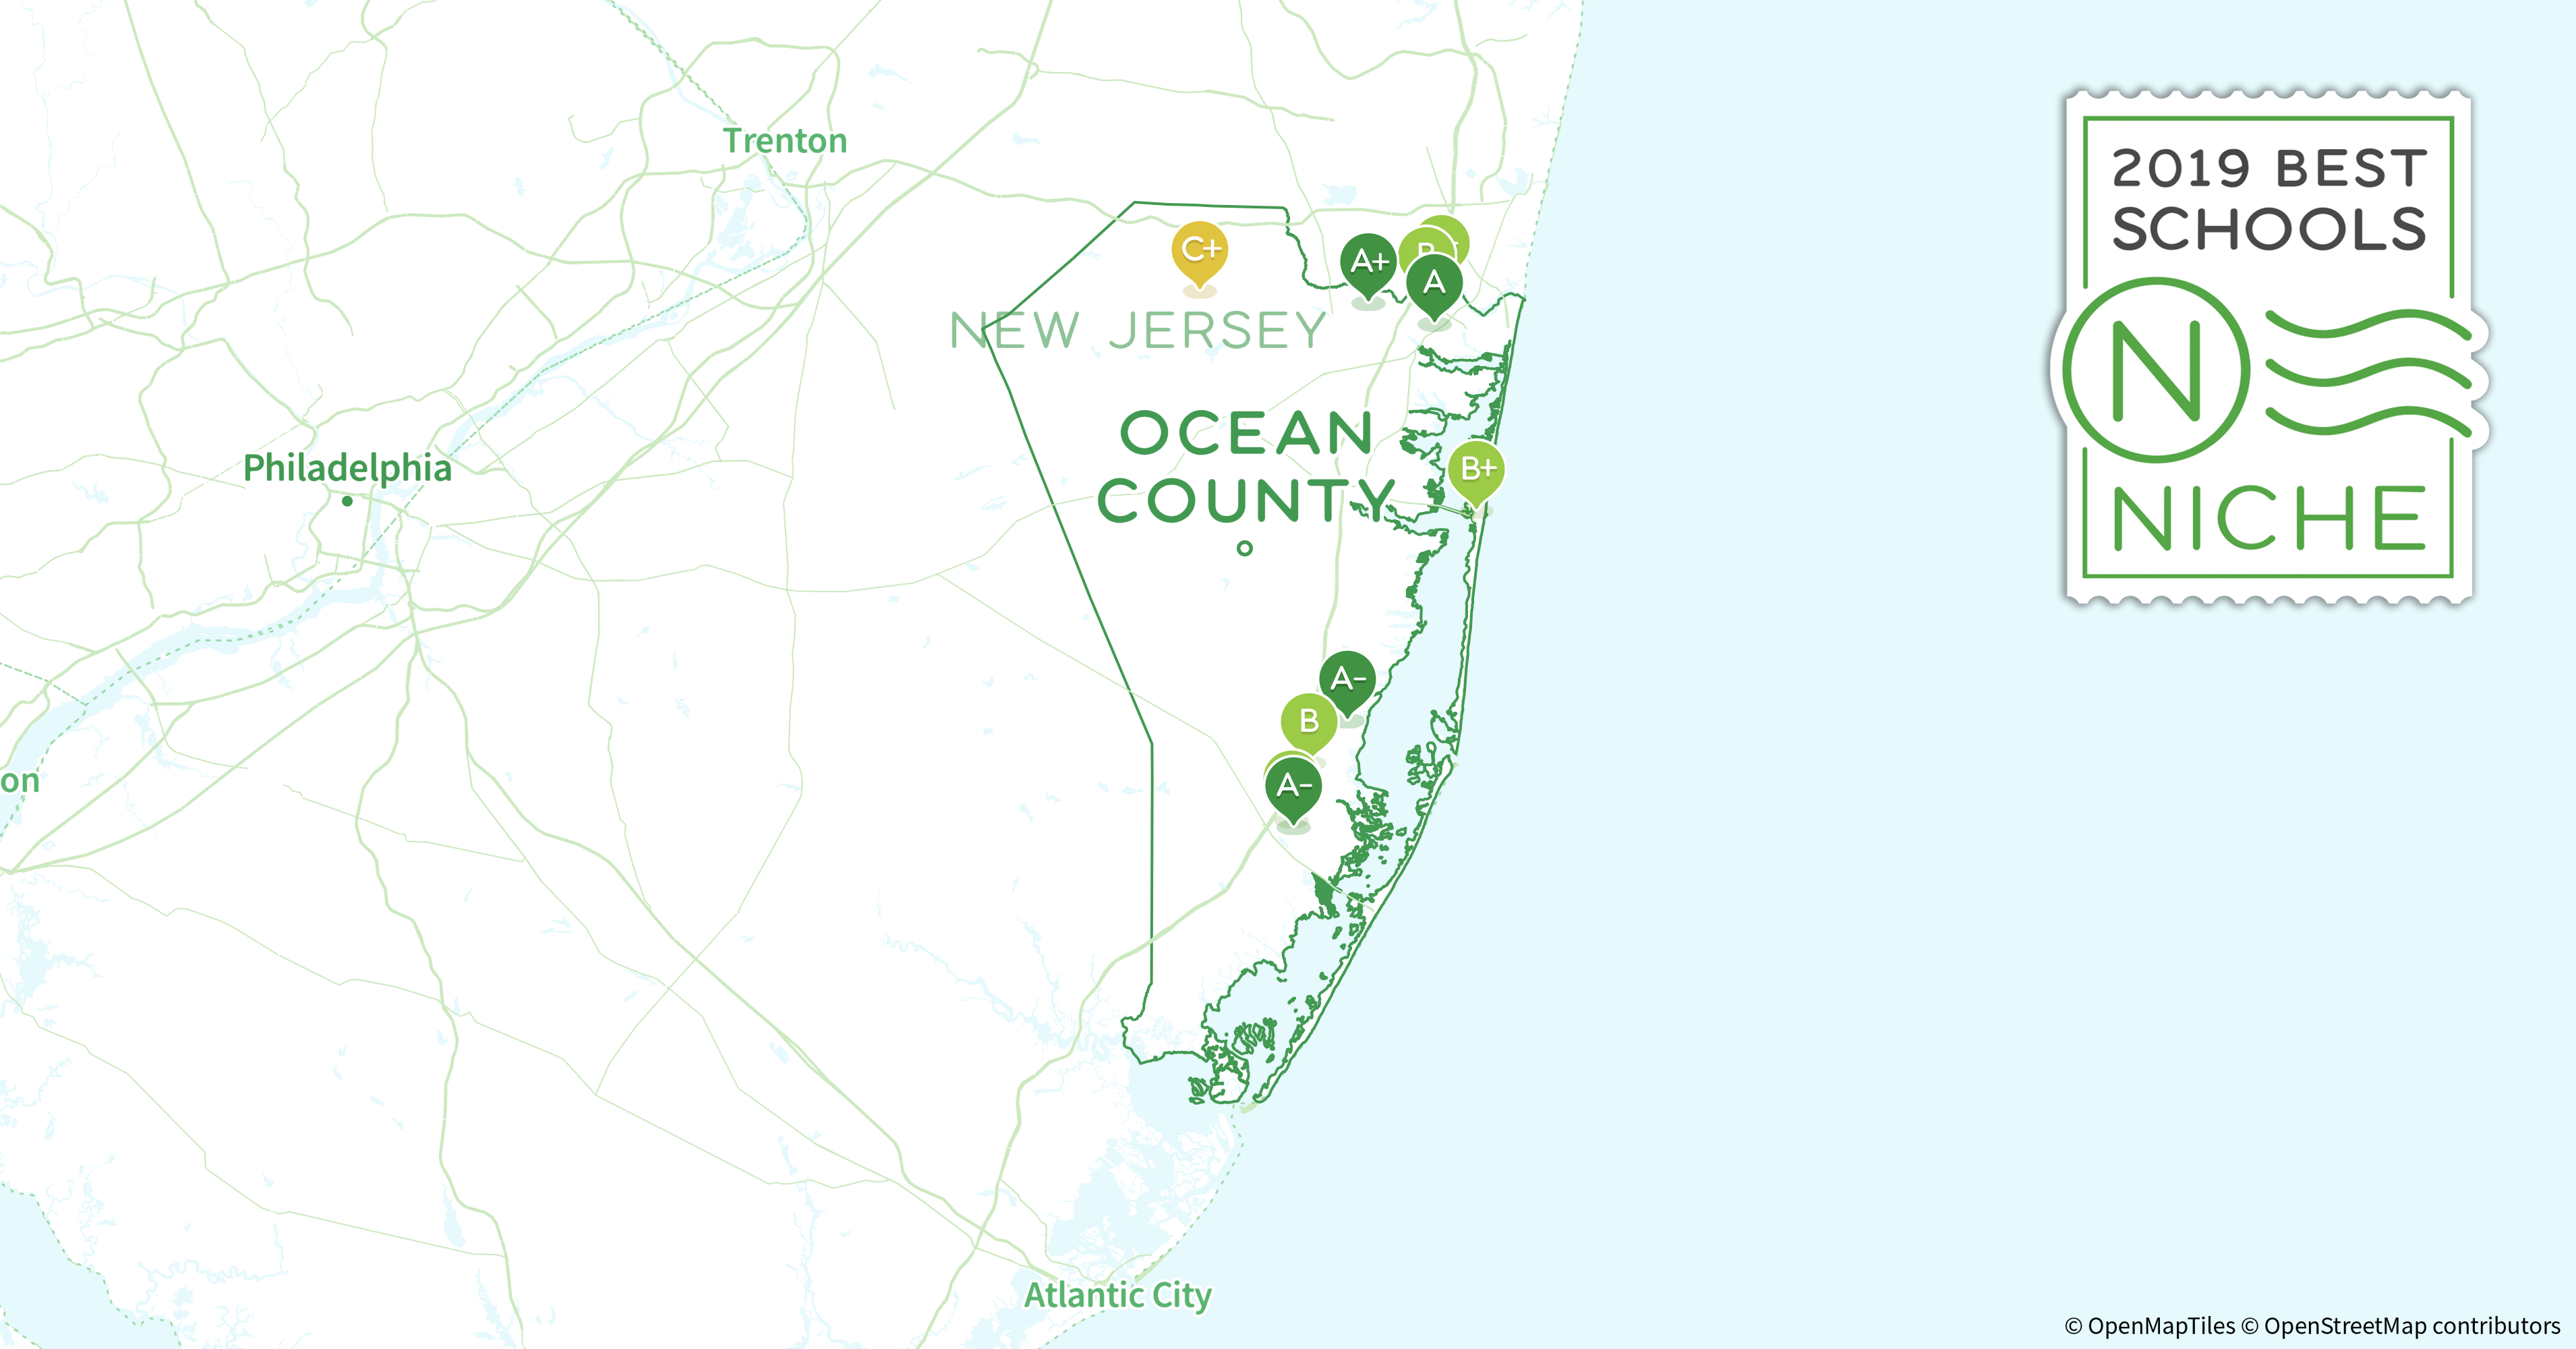 Districts in Ocean County, NJ - Niche on